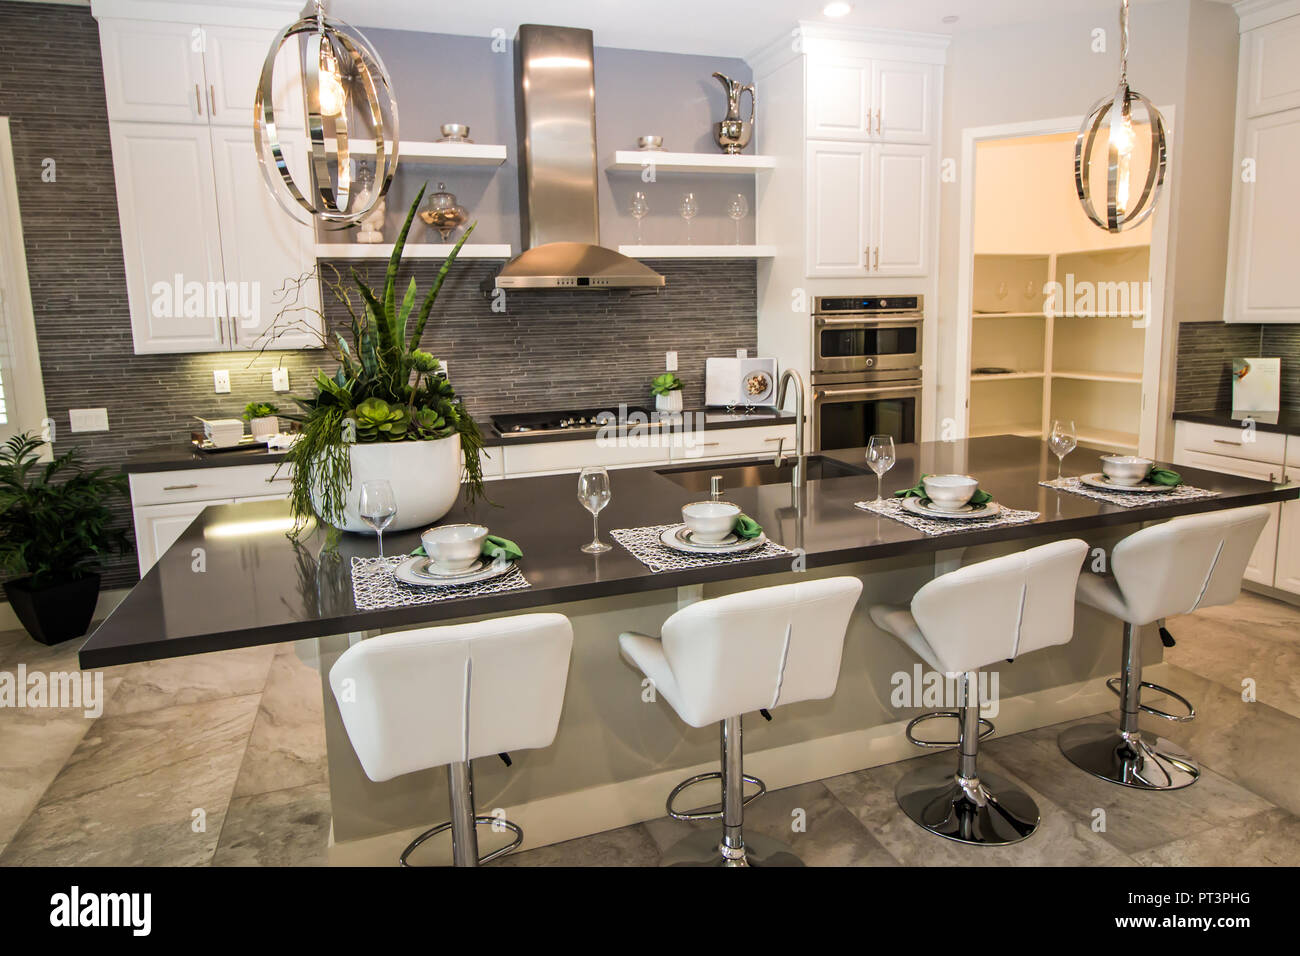 Modern Kitchen With Place Settings On Counter Bar Stock ...